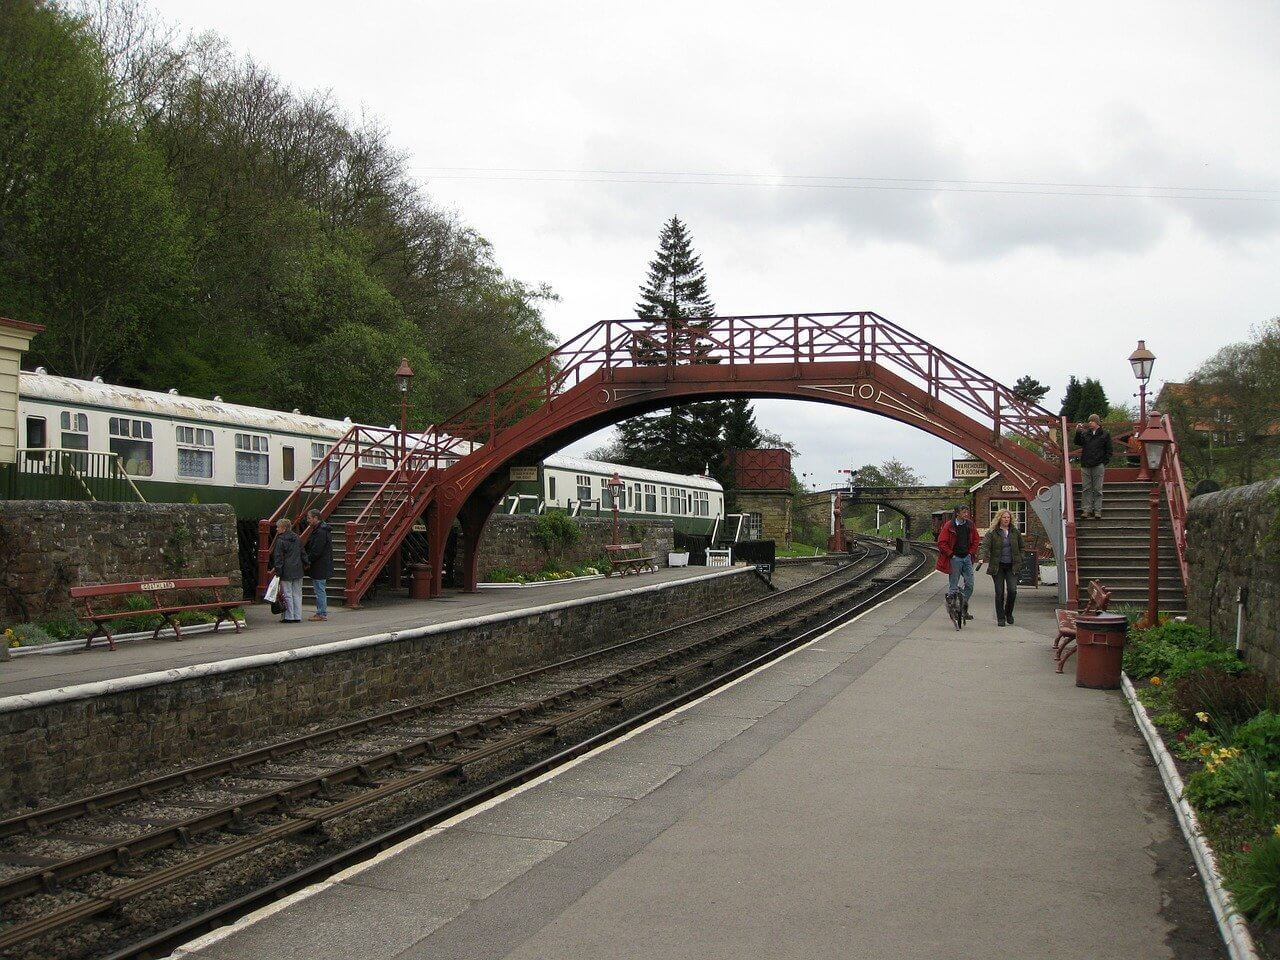 North Yorkshire railway for families